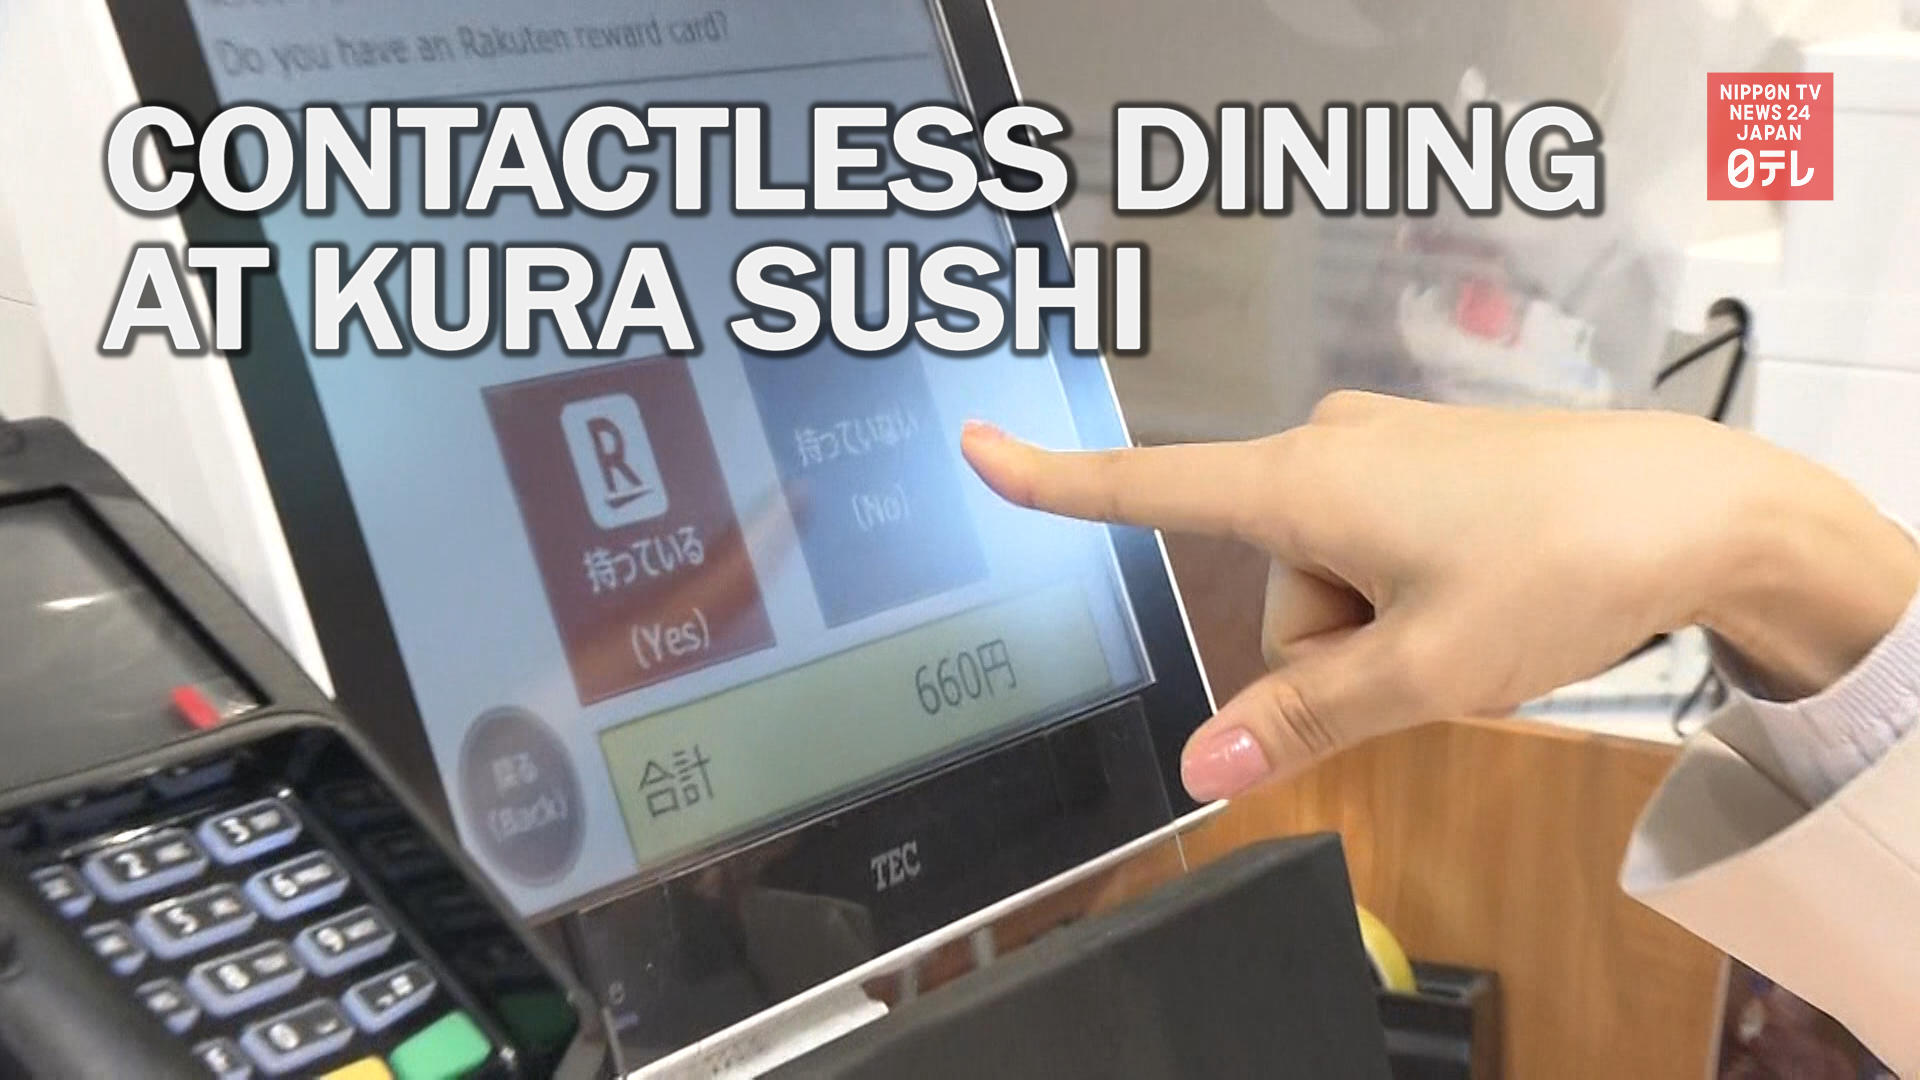 Sushi store offers contactless dining experience